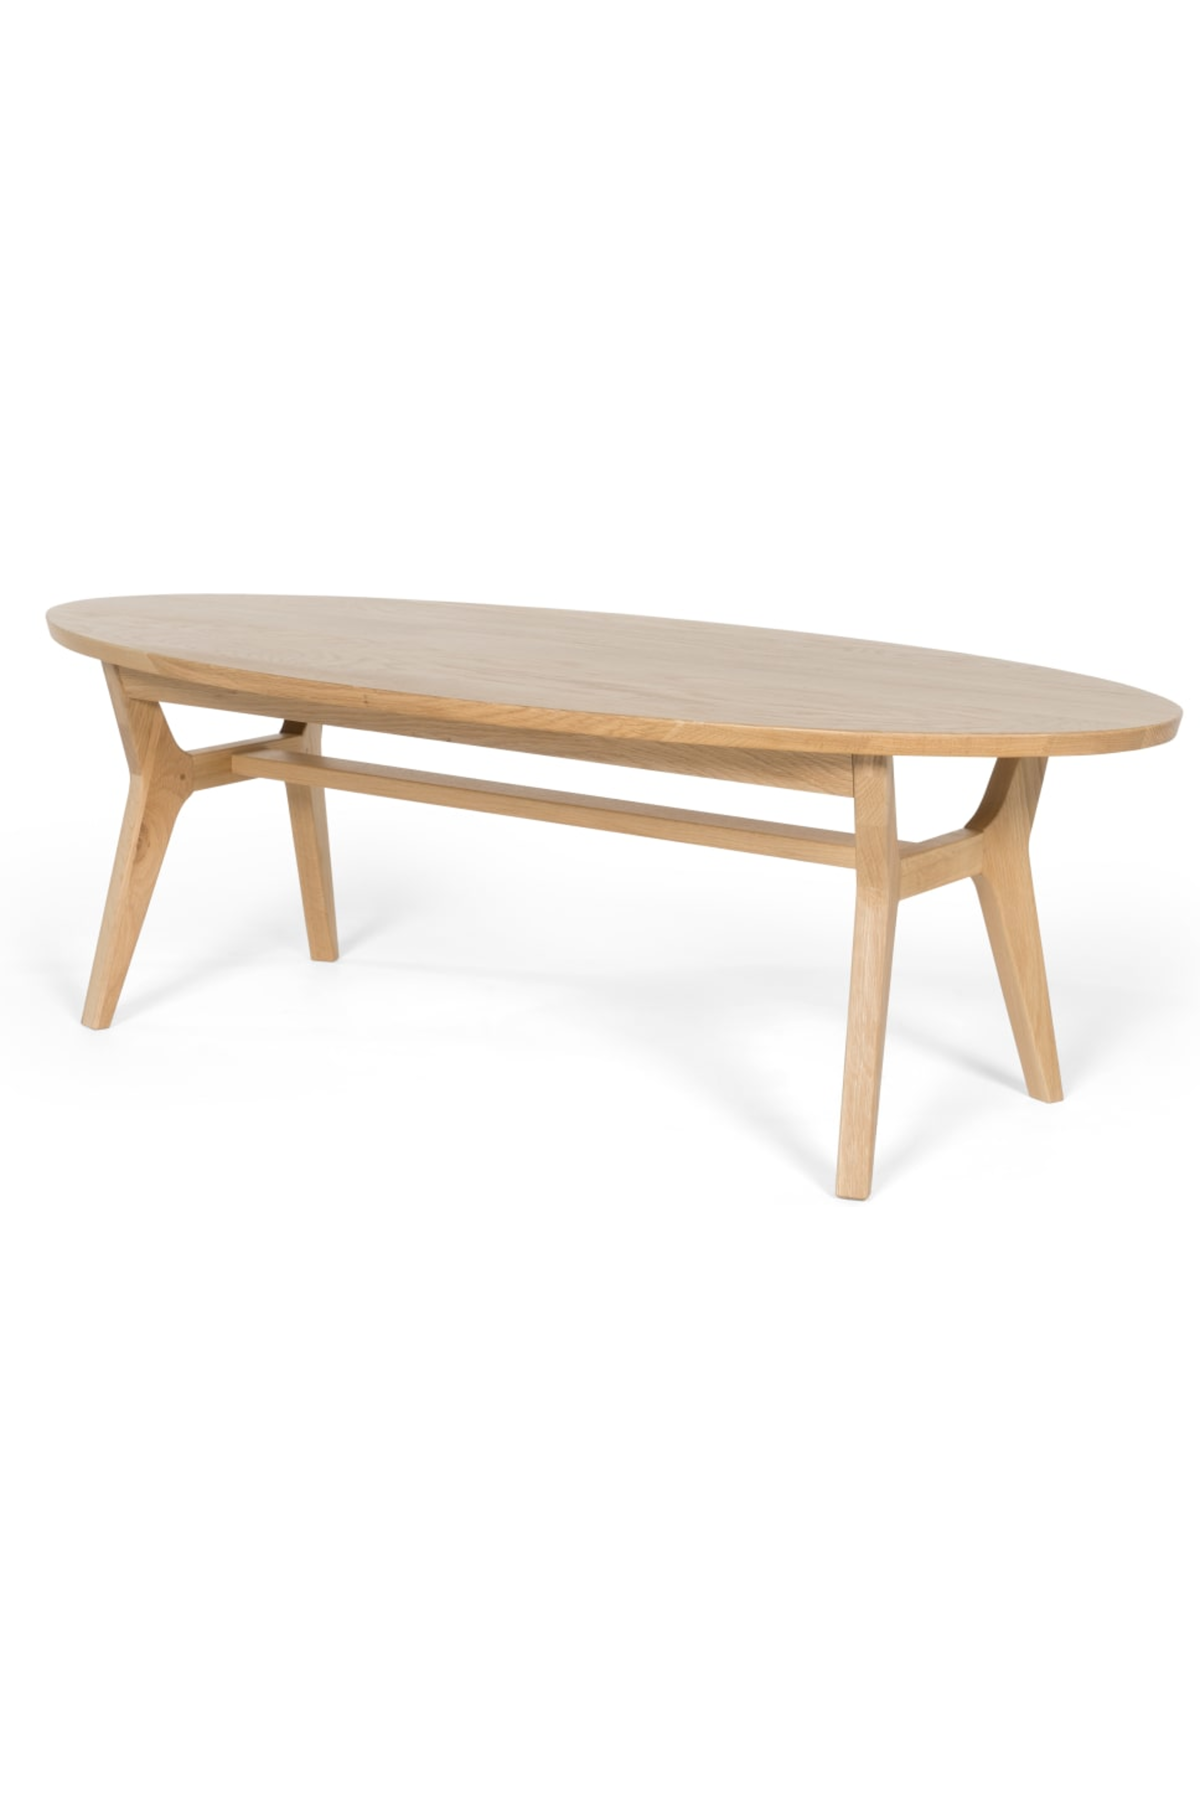 Astonishing Made Light Wood Coffee Table Products In 2019 Oval Machost Co Dining Chair Design Ideas Machostcouk